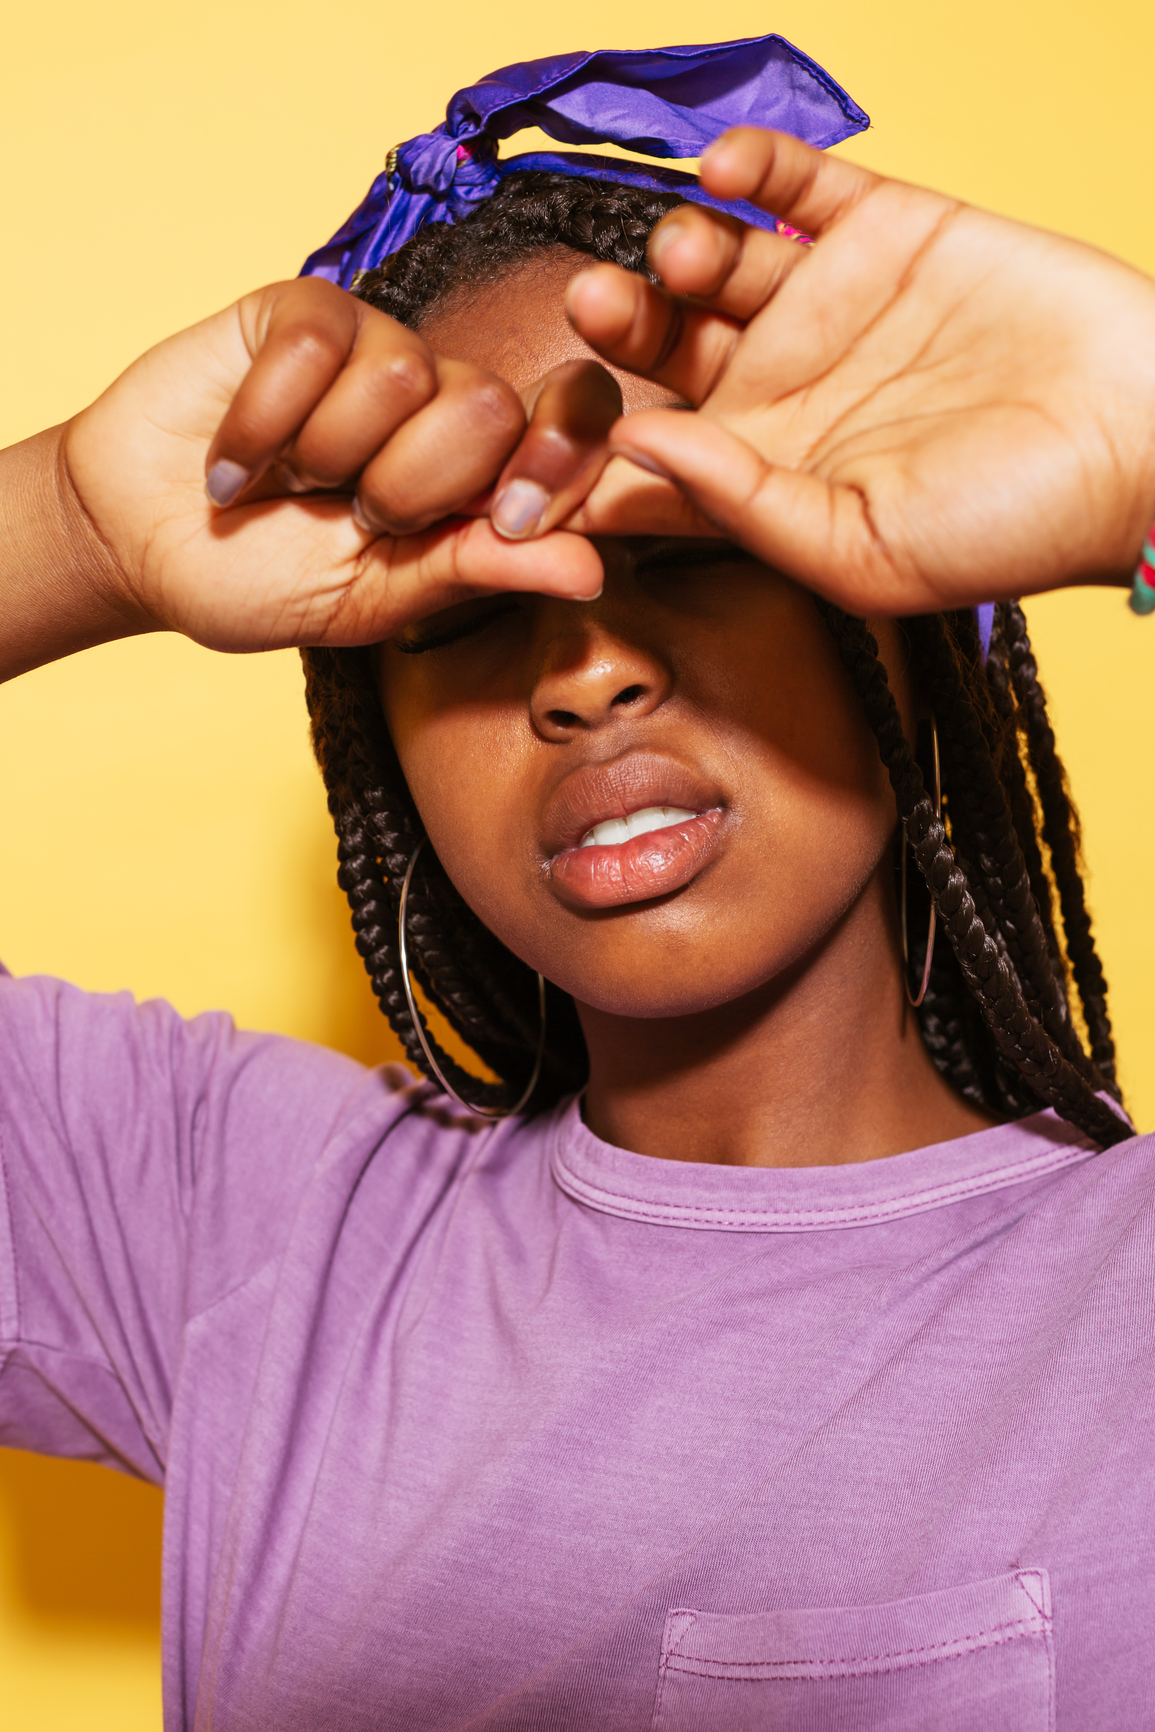 Stylish African-American teen girl in violet outfit pulling finger in front of closed eyes against yellow background. Her hair is in braids and she's wearing gold hoop earrings and a purple head scarf.